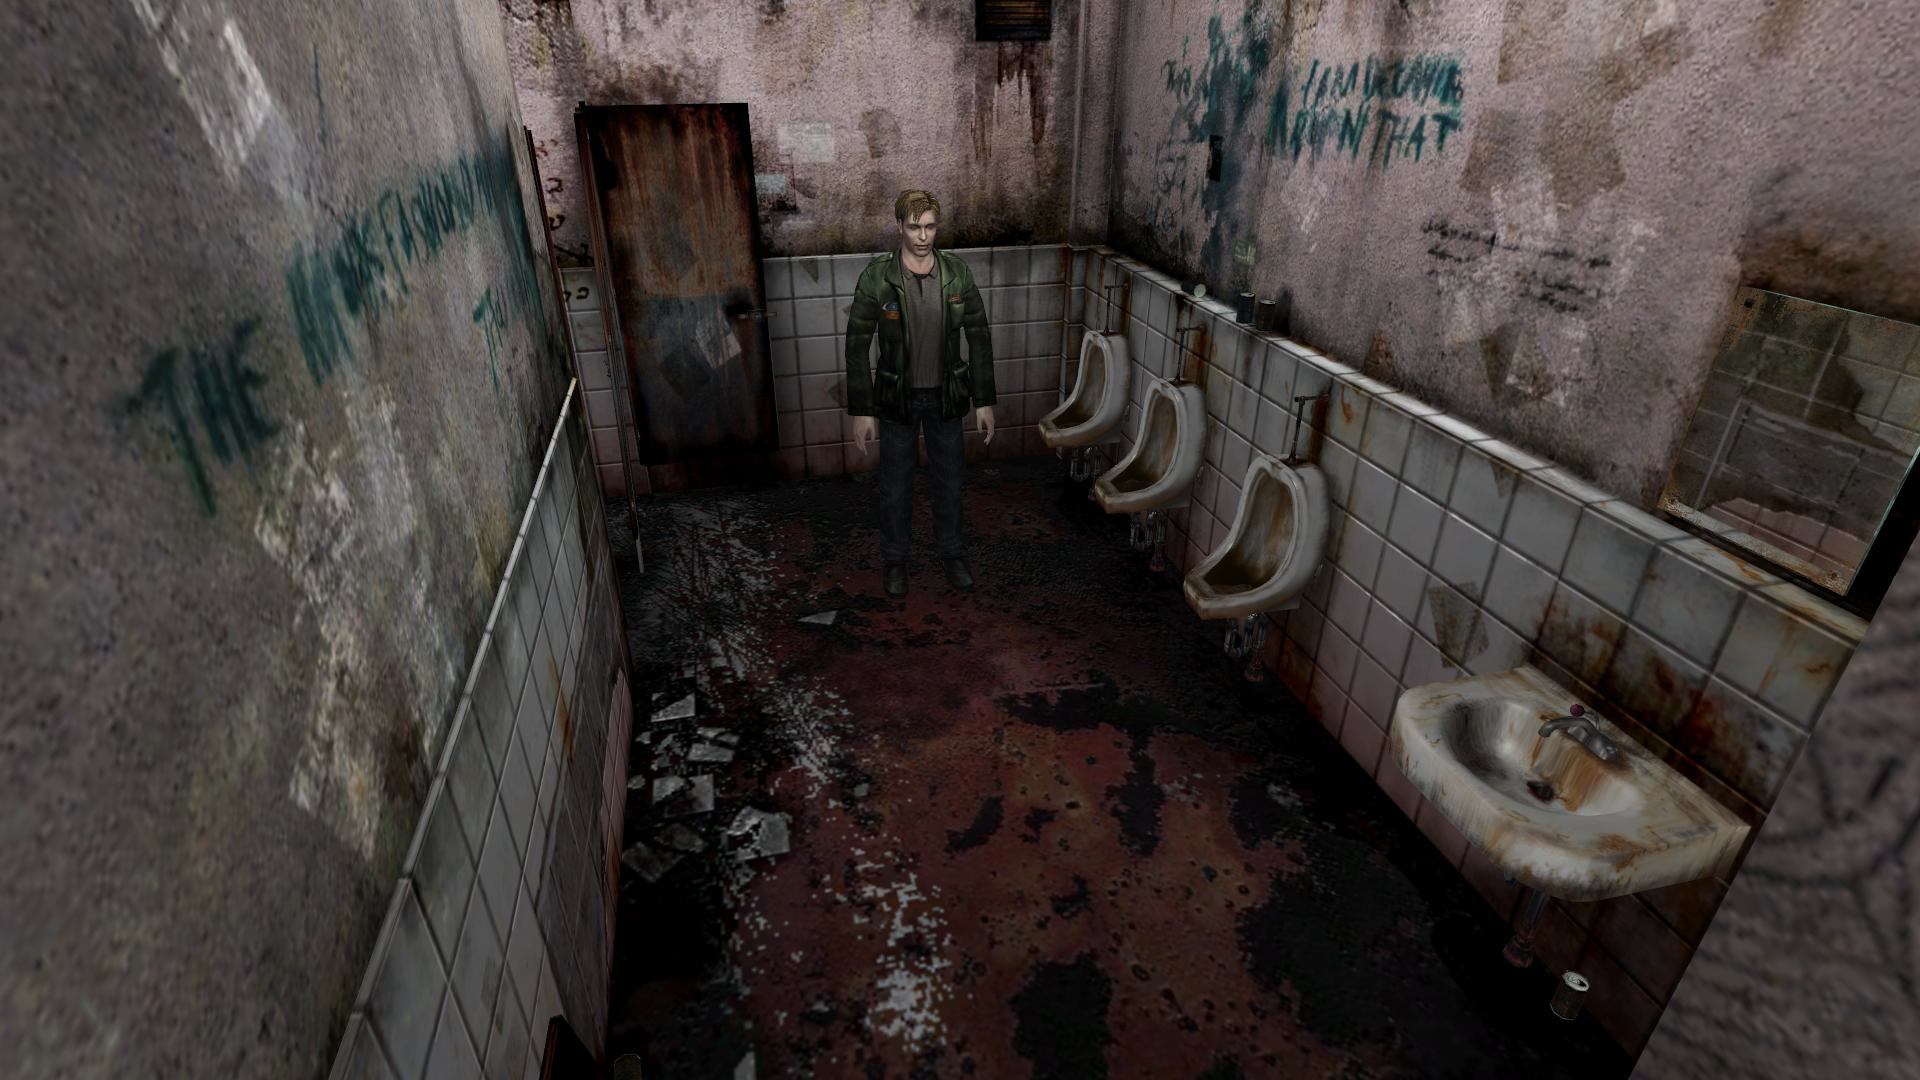 UNILAD sh2pc2010 09 1818 31 0sa9t45971 Ten Of The Most Terrifying Games To Play This Halloween